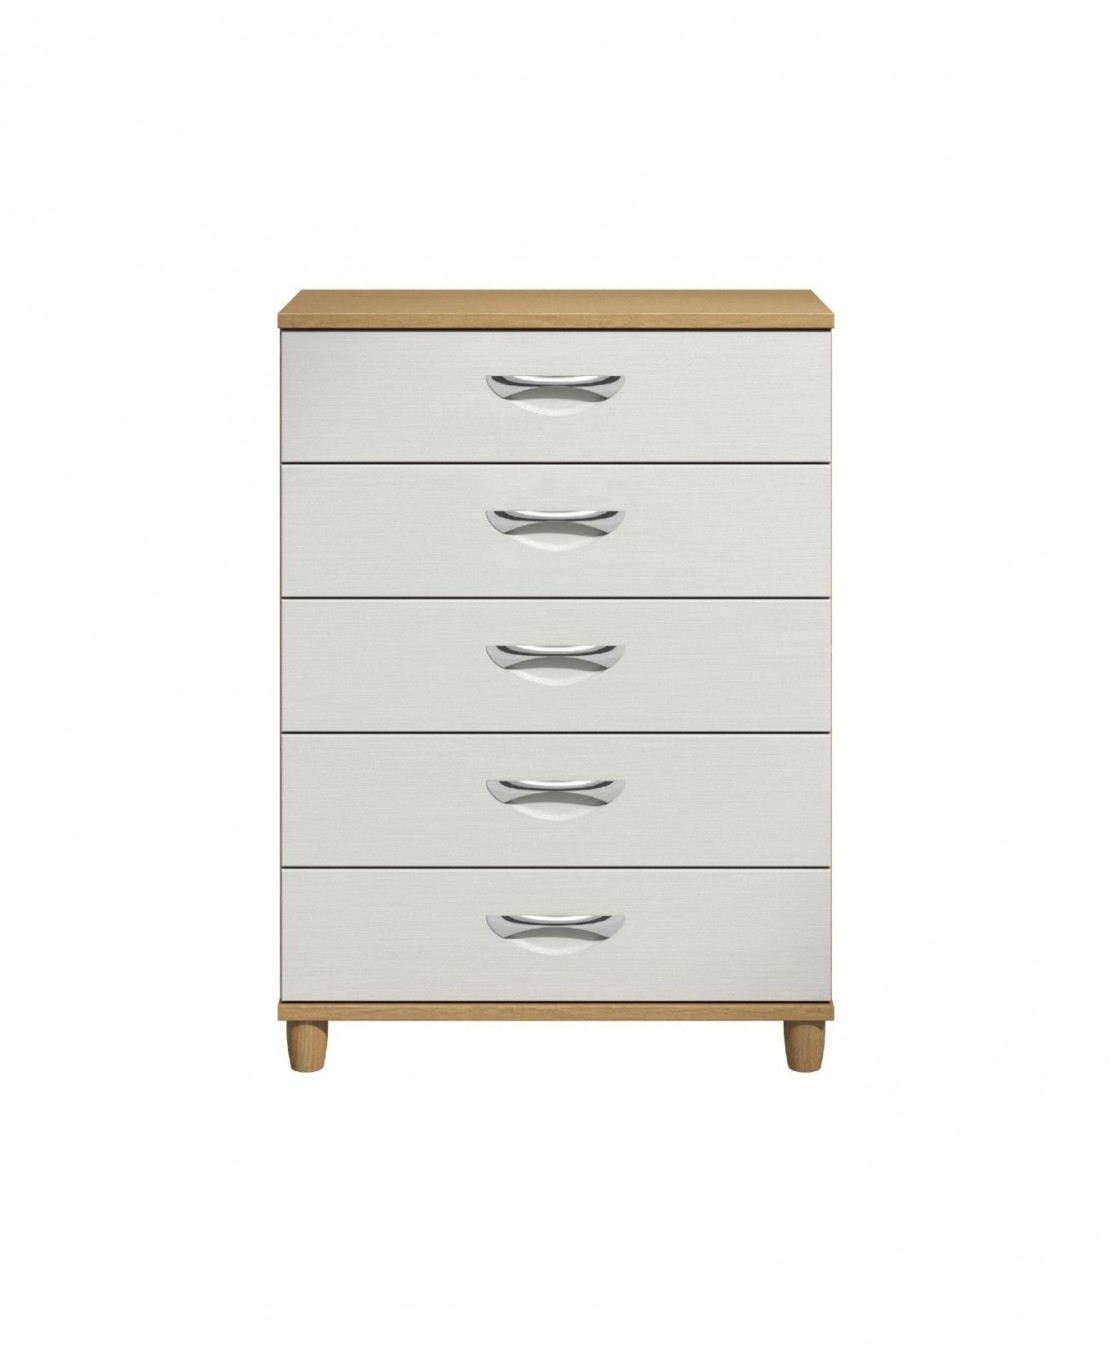 /_images/product-photos/kt-furniture-moda-white-5-drawer-large-chest-a.jpg